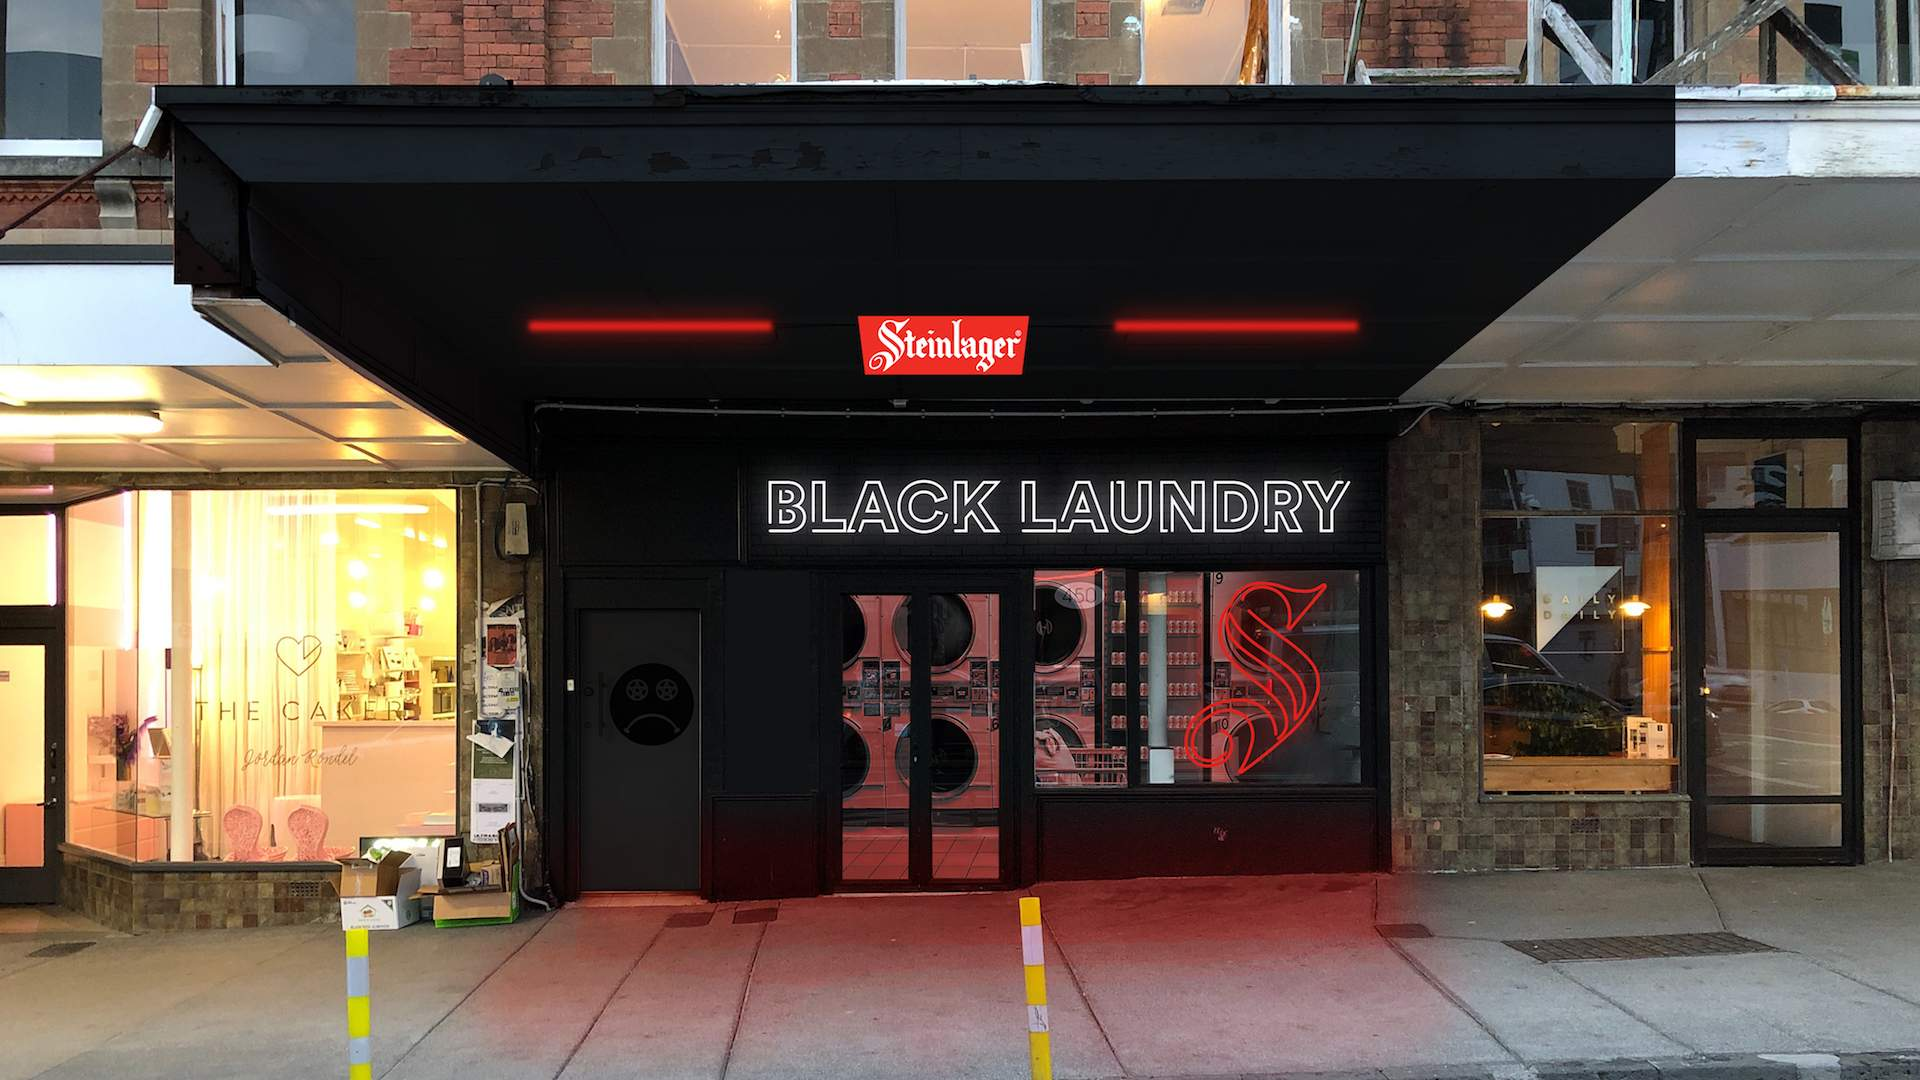 Steinlager Black Laundry